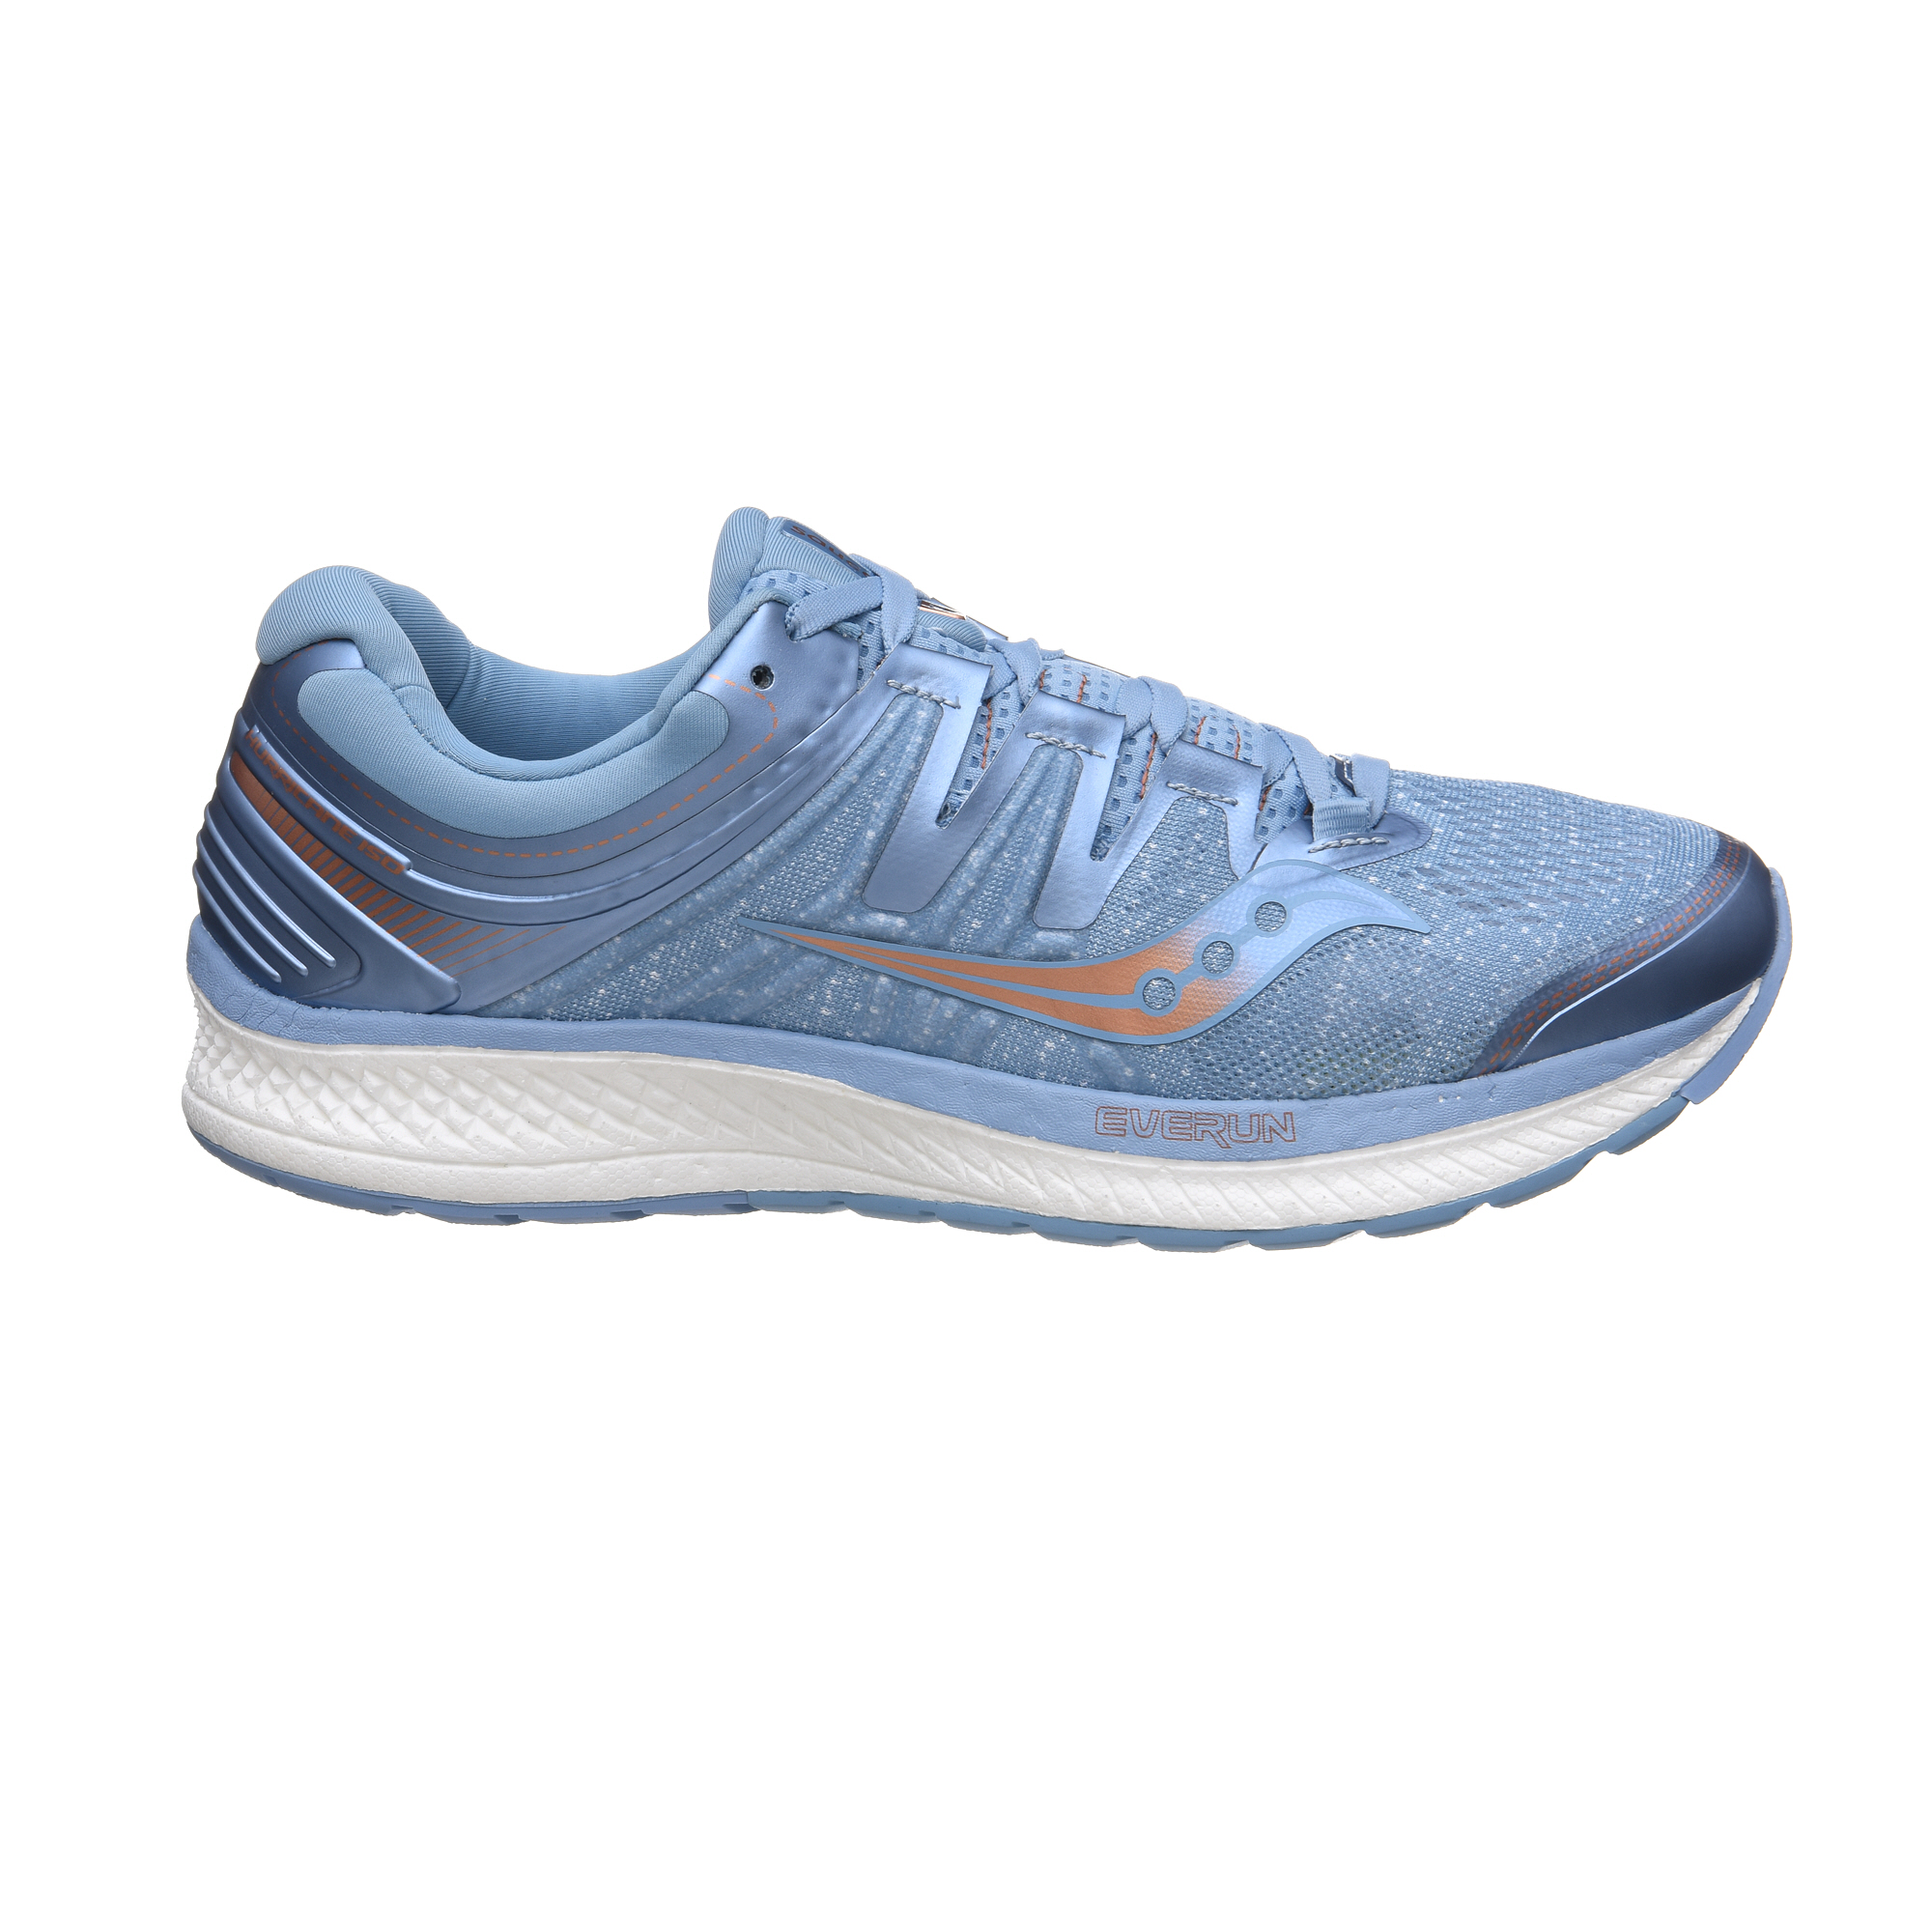 Saucony Women's Hurricane ISO 4 Shoes | Løbesko